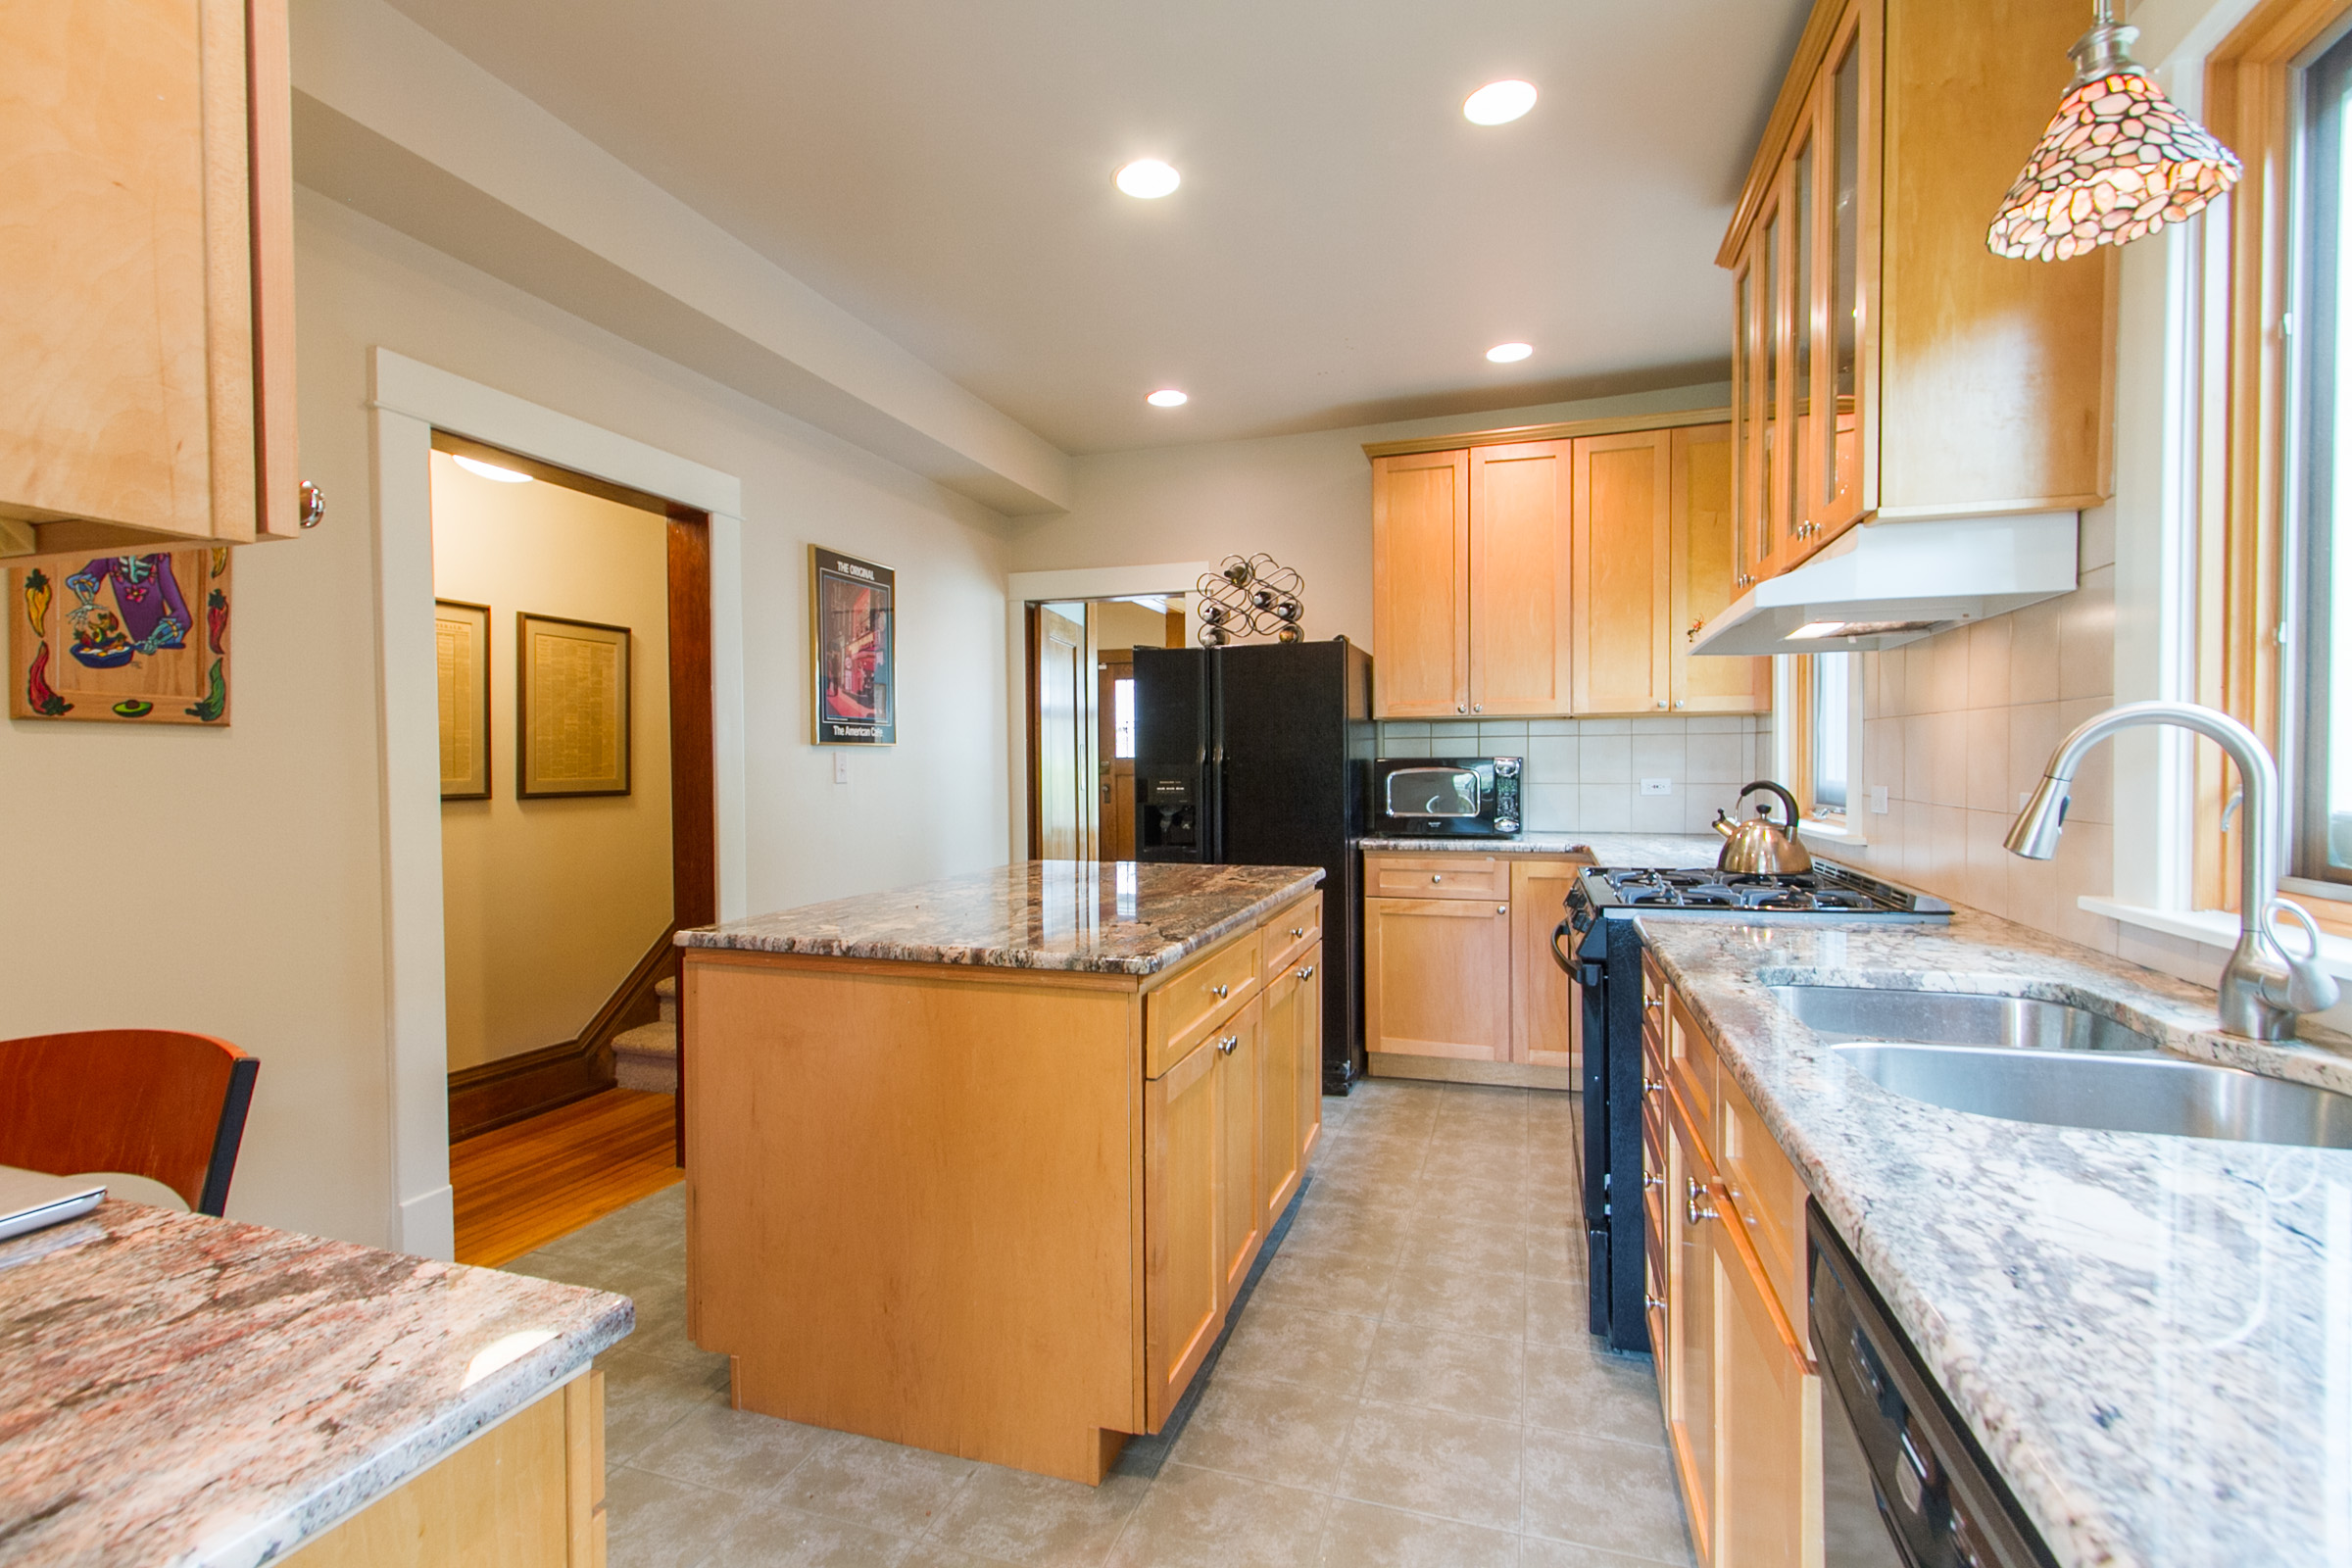 1246125_Maple-Cabinets-And-Granite_high.jpg